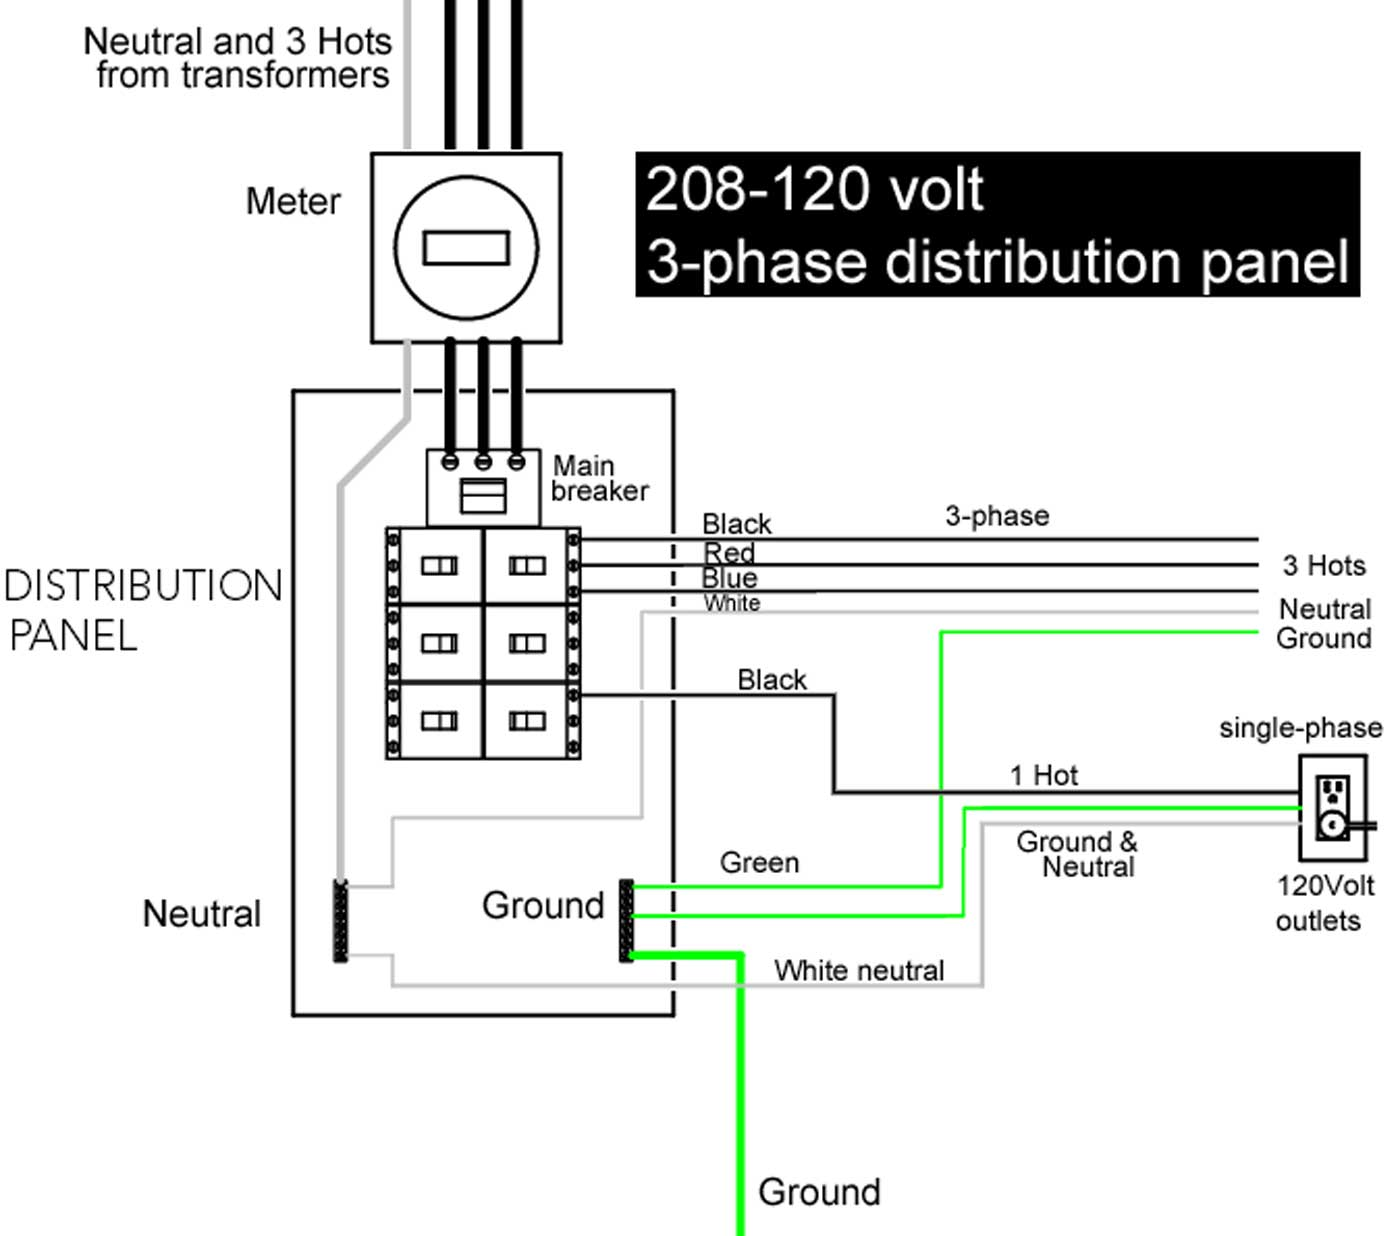 3 phase distribution panel how to wire 3 phase 120 volt outlet diagram at bayanpartner.co